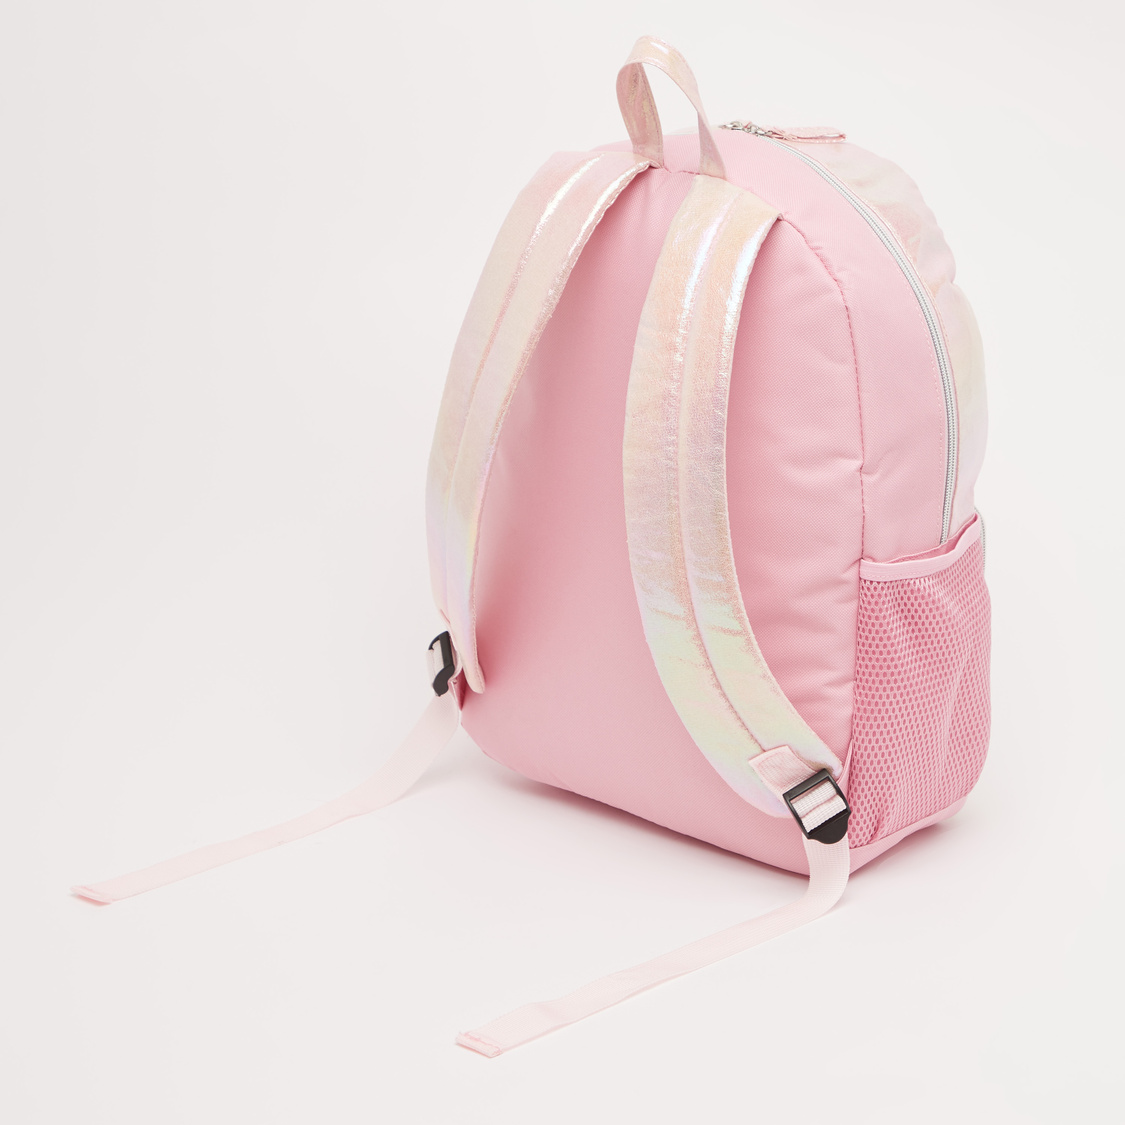 Textured Backpack with Adjustable Straps and Zip Closure - 16 Inches